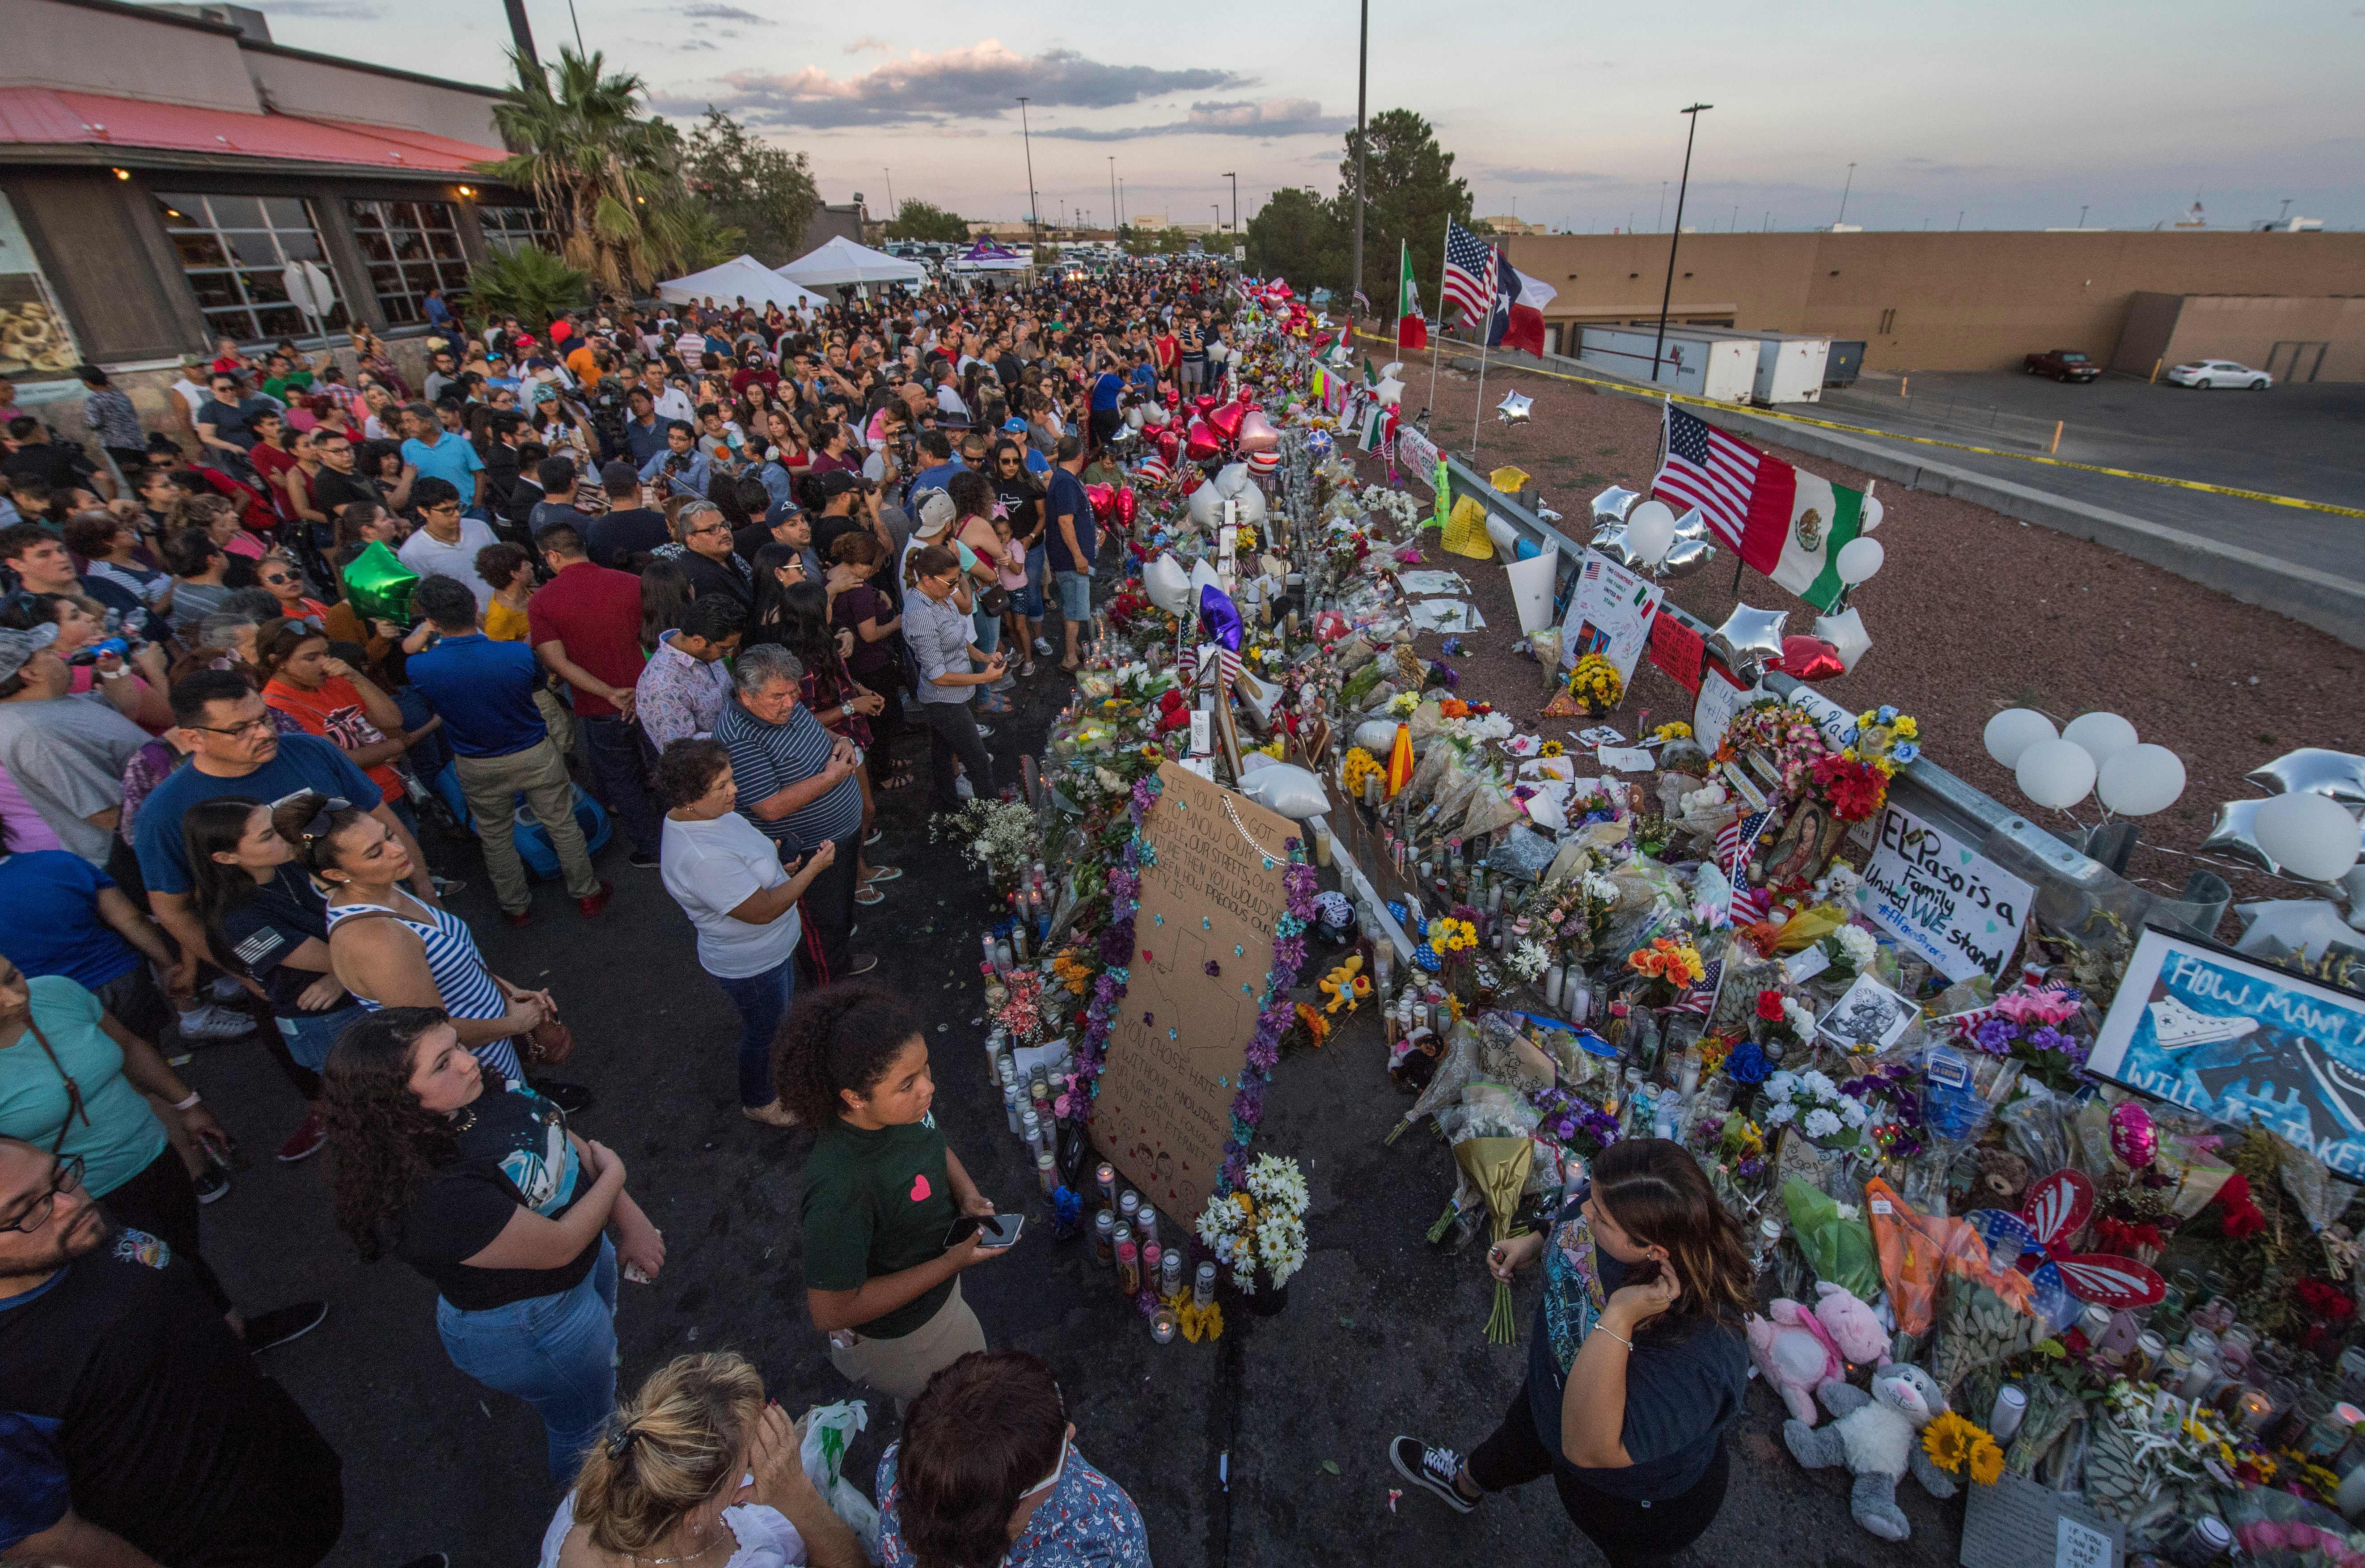 People pray and pay their respects at the makeshift memorial for victims of the shooting that left a total of 22 people dead at the Cielo Vista Mall WalMart (background) in El Paso, Texas, on August 6, 2019. - US President Donald Trump on Monday urged Republicans and Democrats to agree on tighter gun control and suggested legislation could be linked to immigration reform after two shootings left 30 people dead and sparked accusations that his rhetoric was part of the problem.